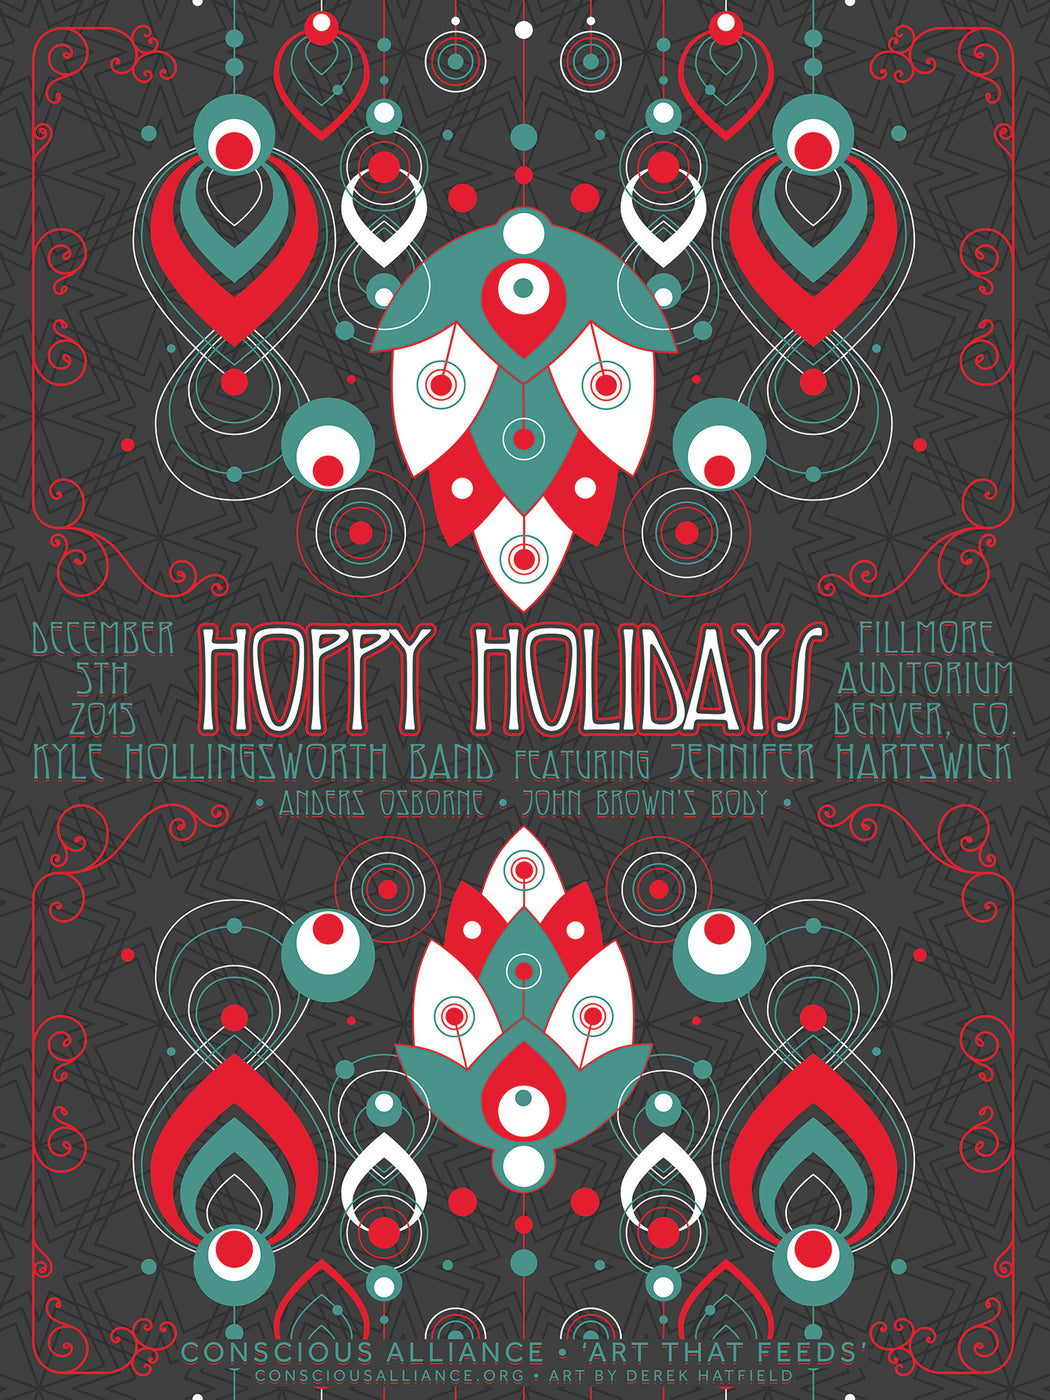 Hoppy Holidays Denver - 2015